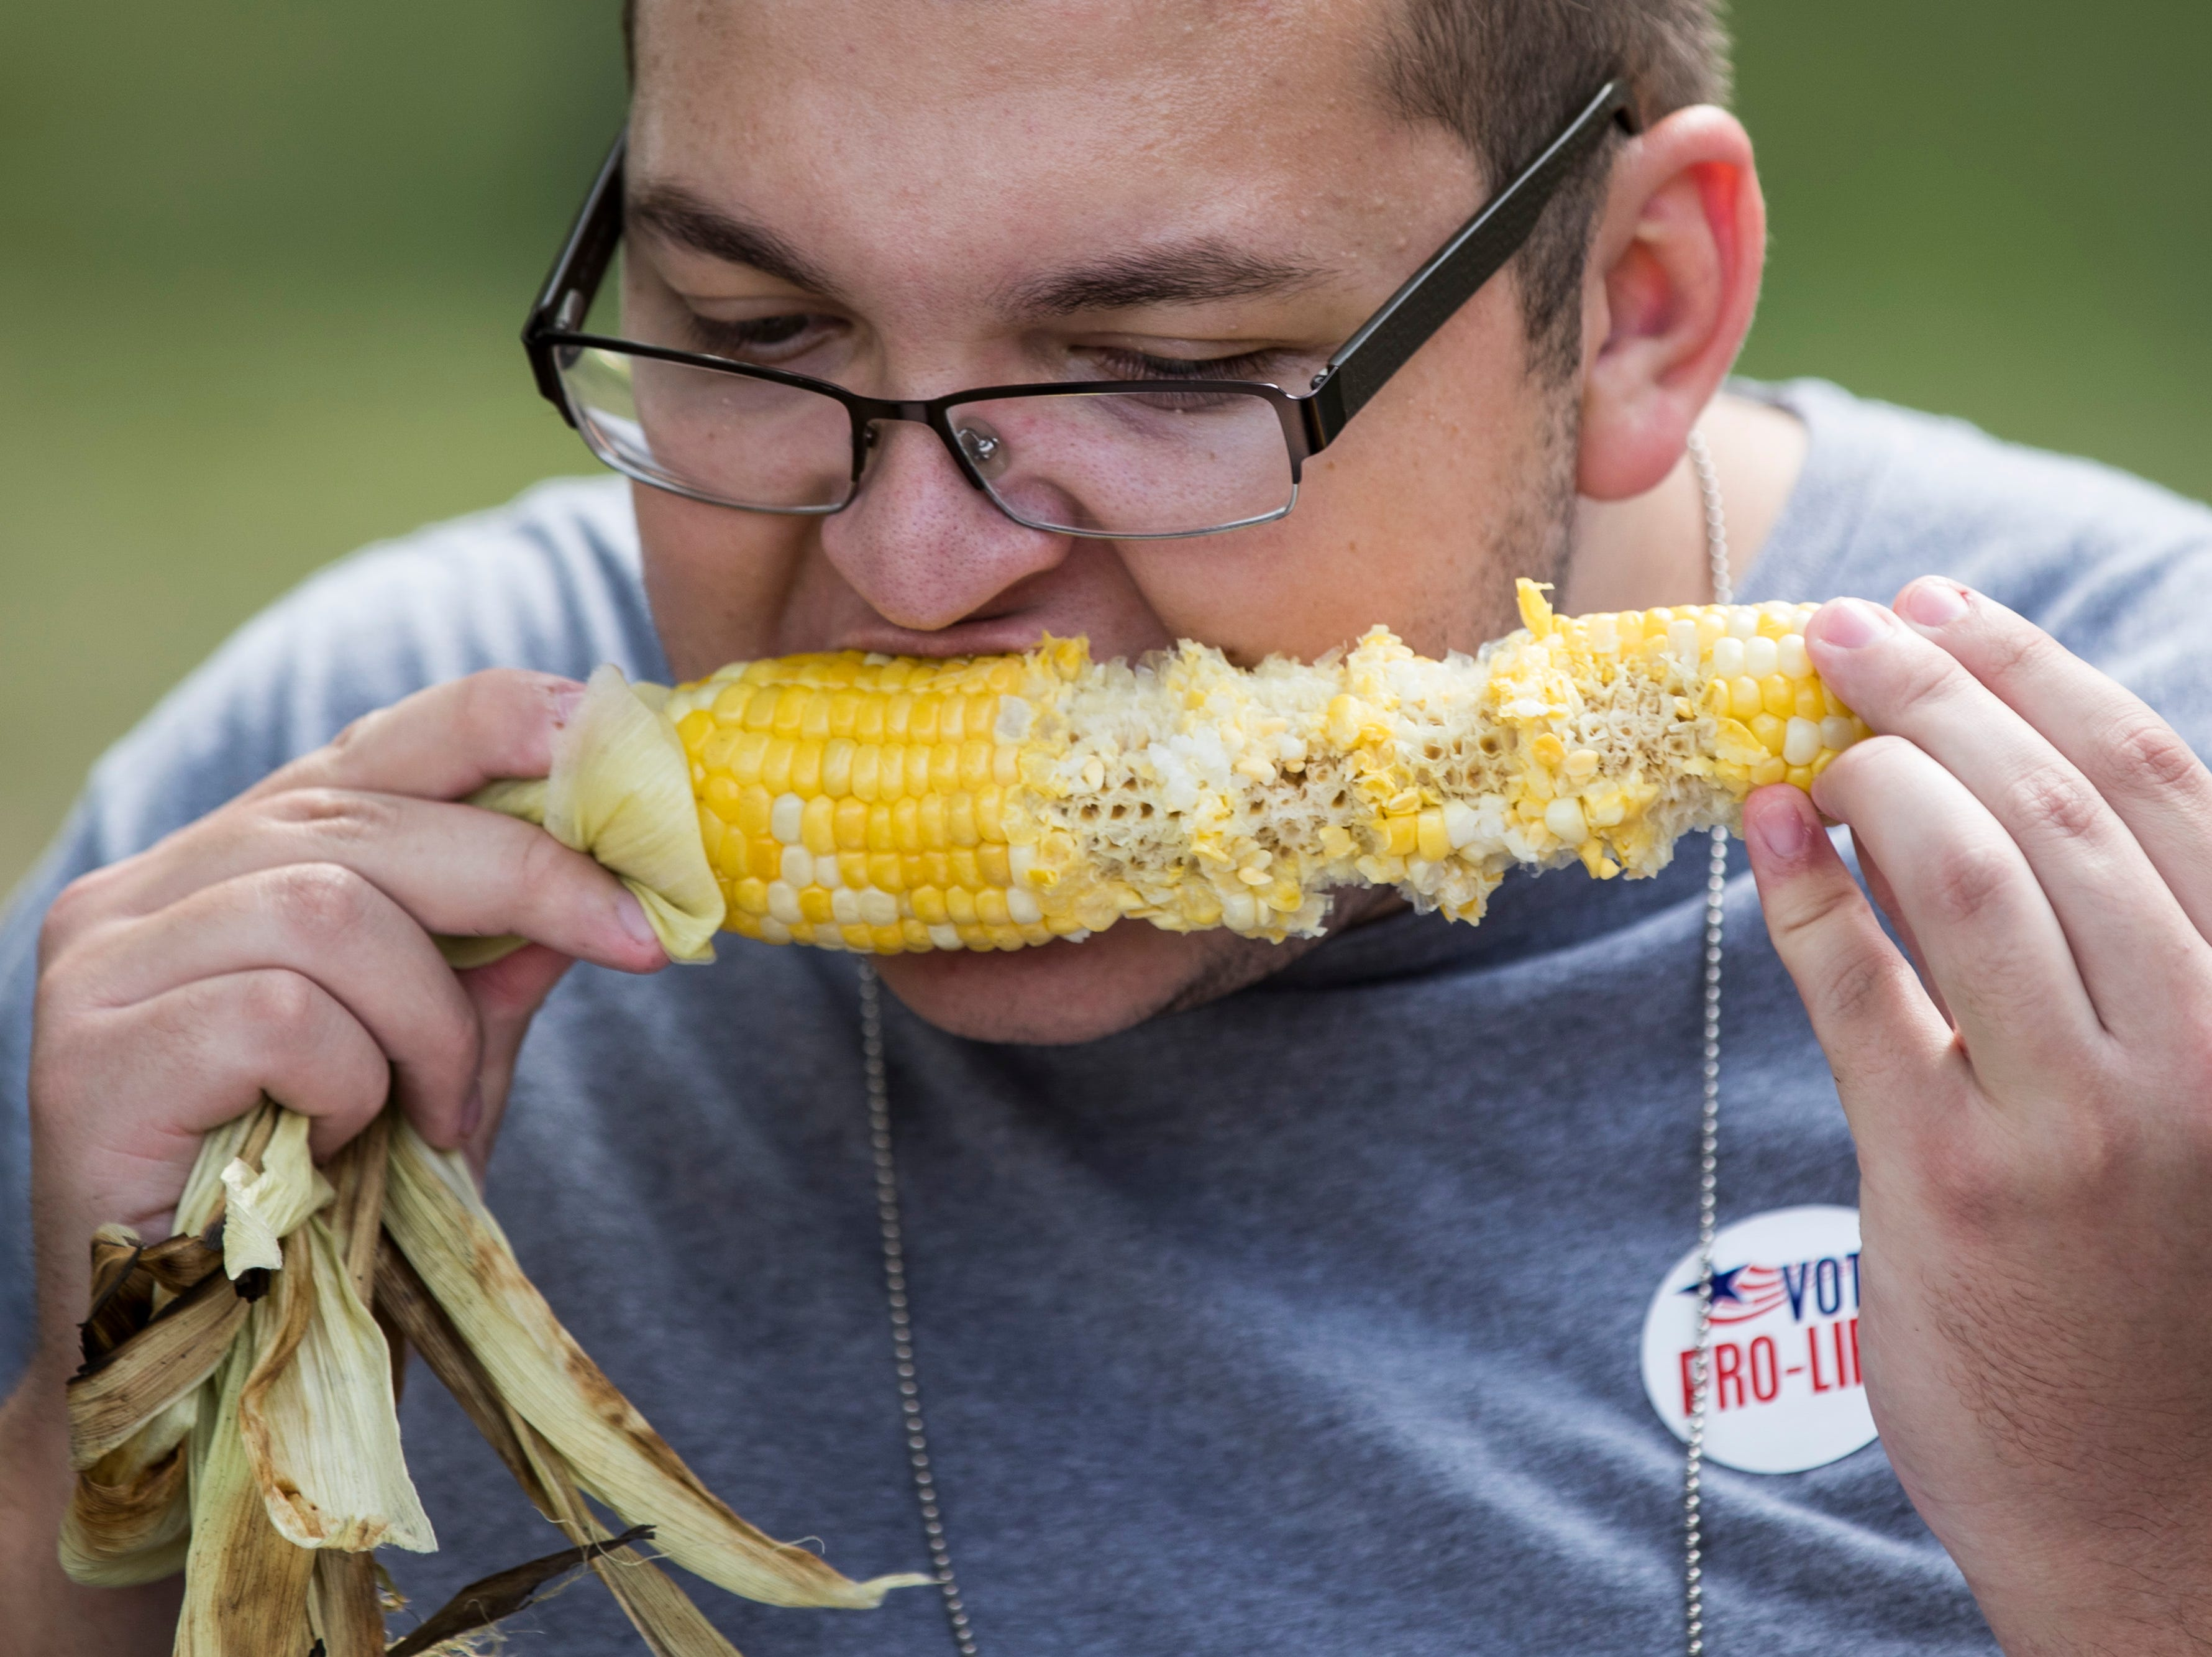 Jared Stoner tries out some corn on the cob at the Kentucky State Fair on Monday. Aug. 20, 2018